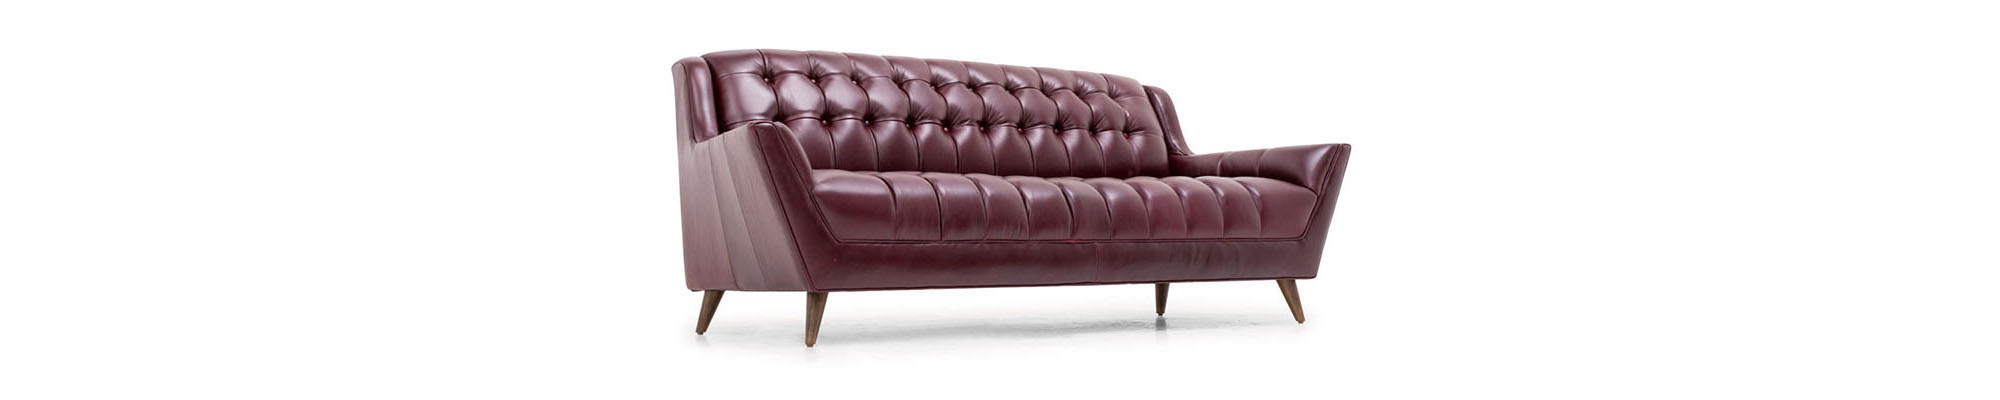 Fitzgerald Leather Sofa Joybird